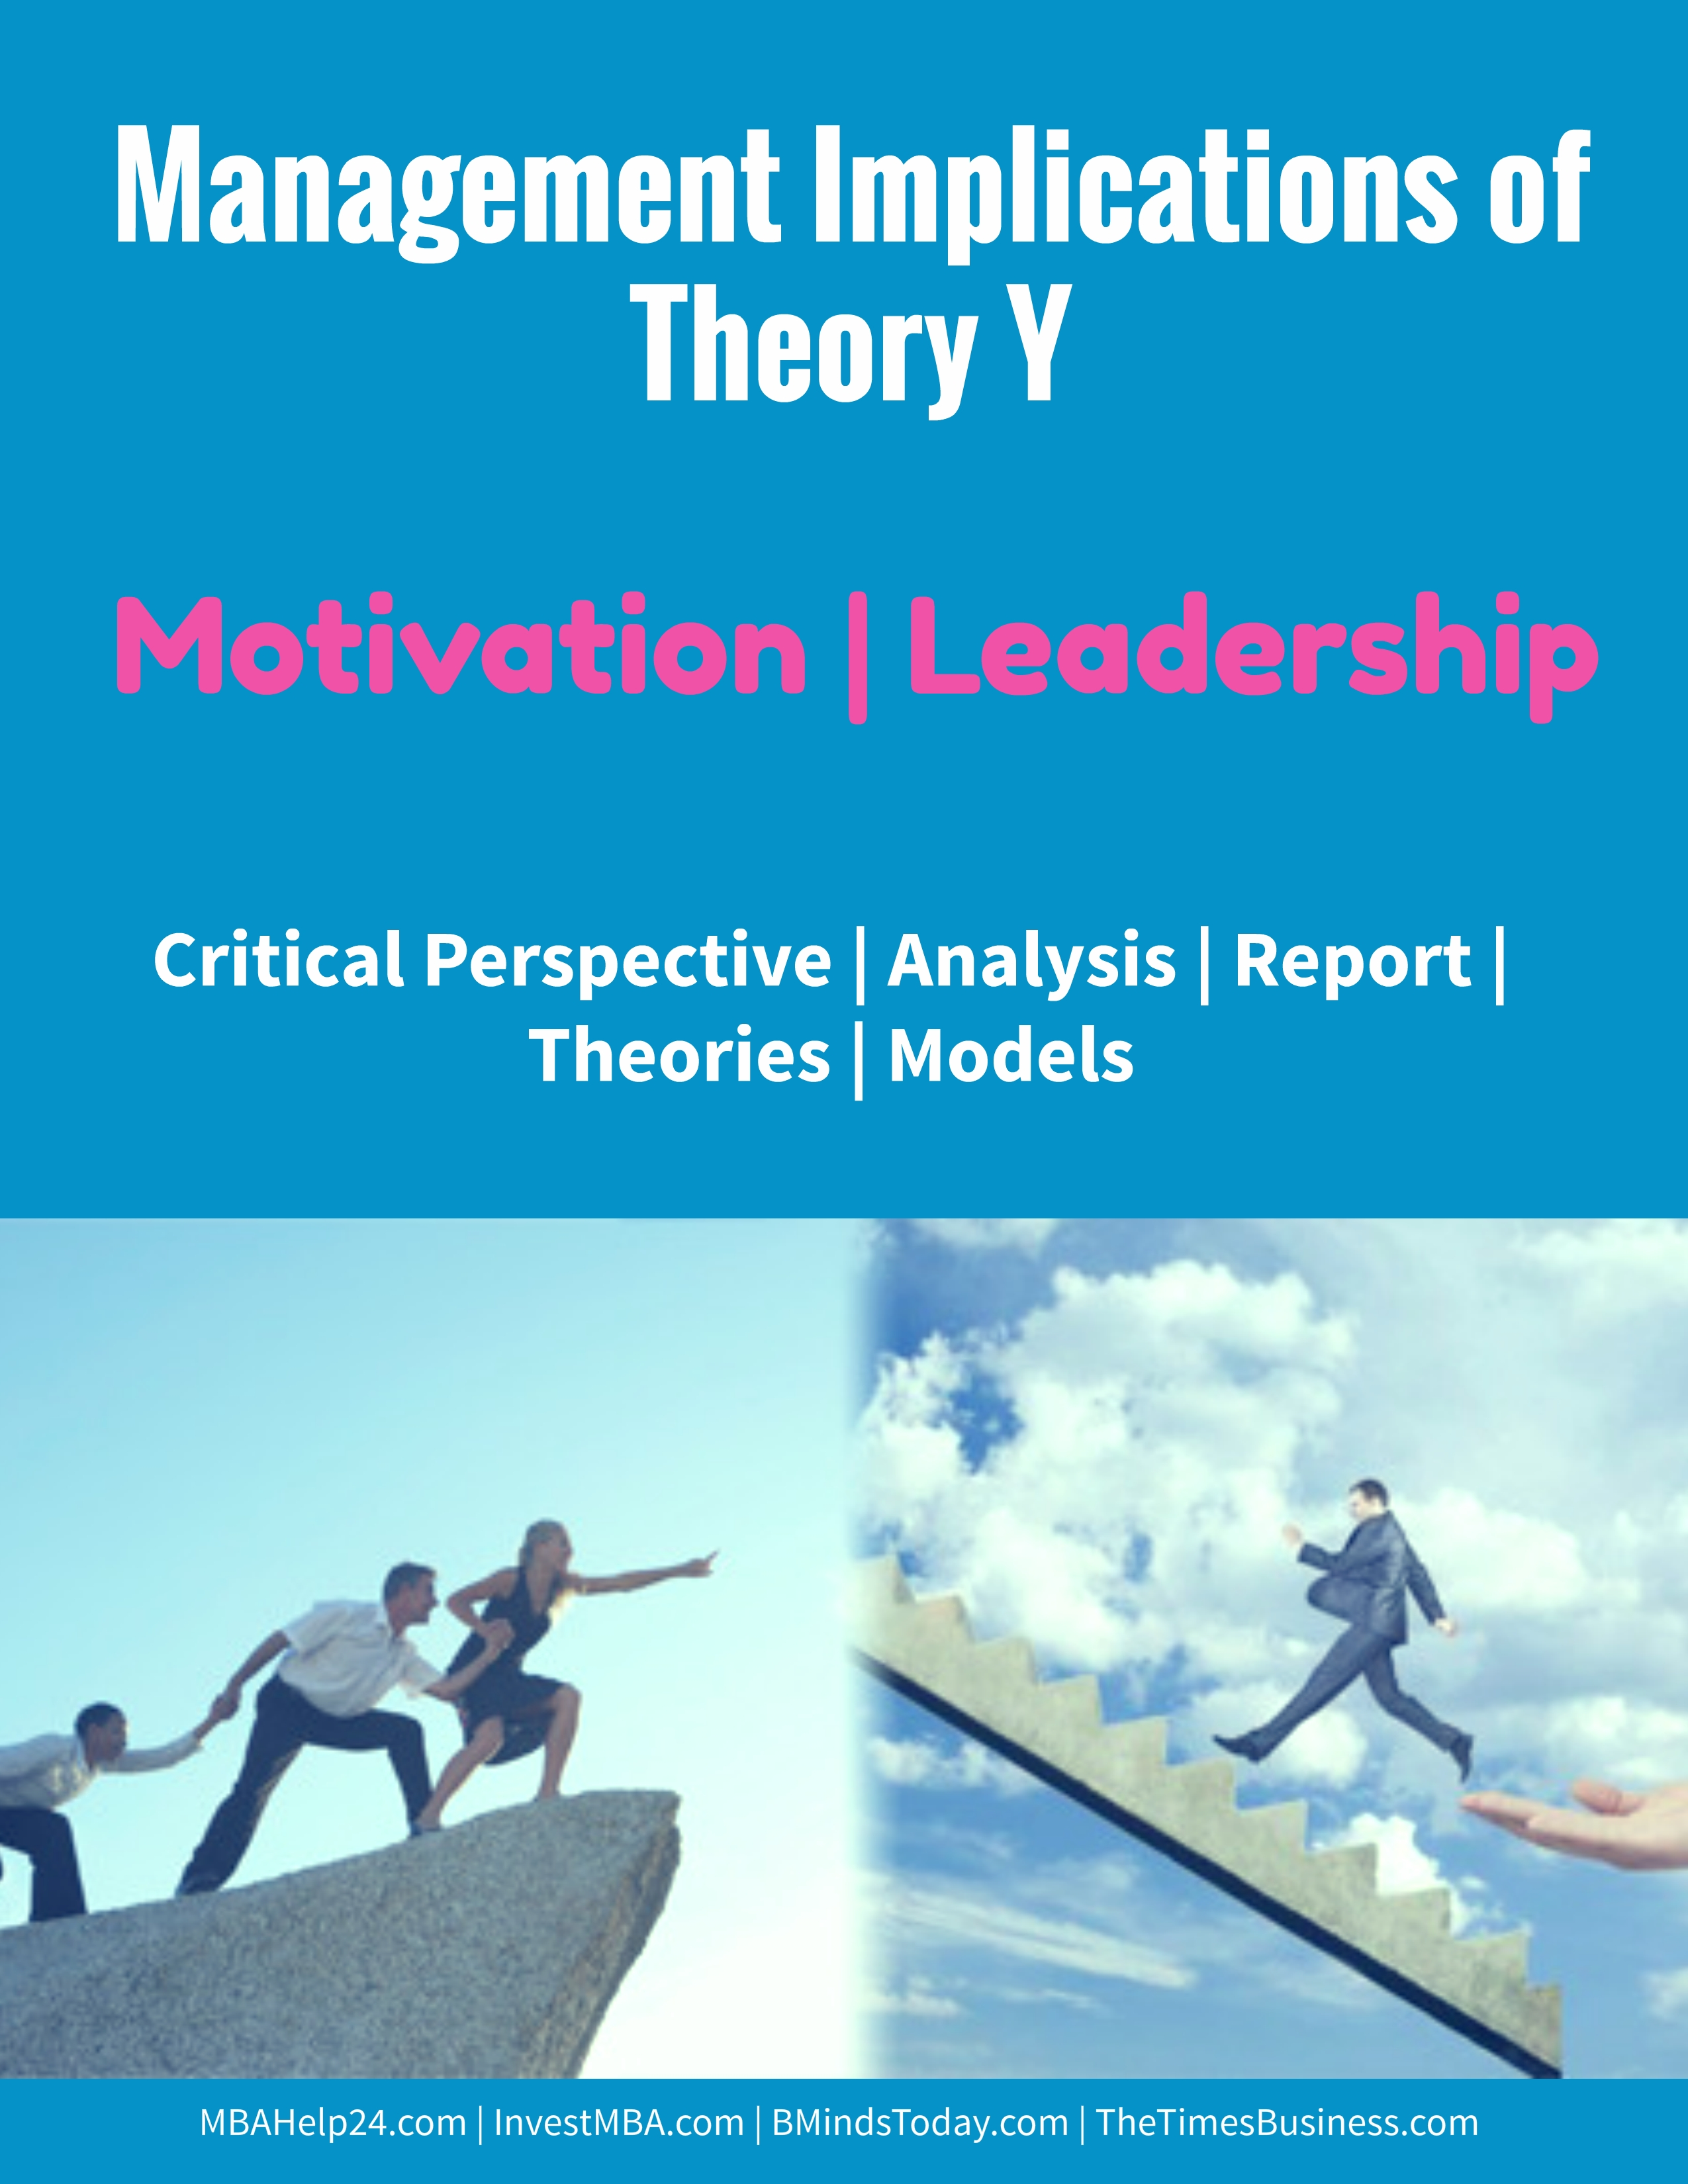 Management Implications of Theory Y | Motivation | Leadership